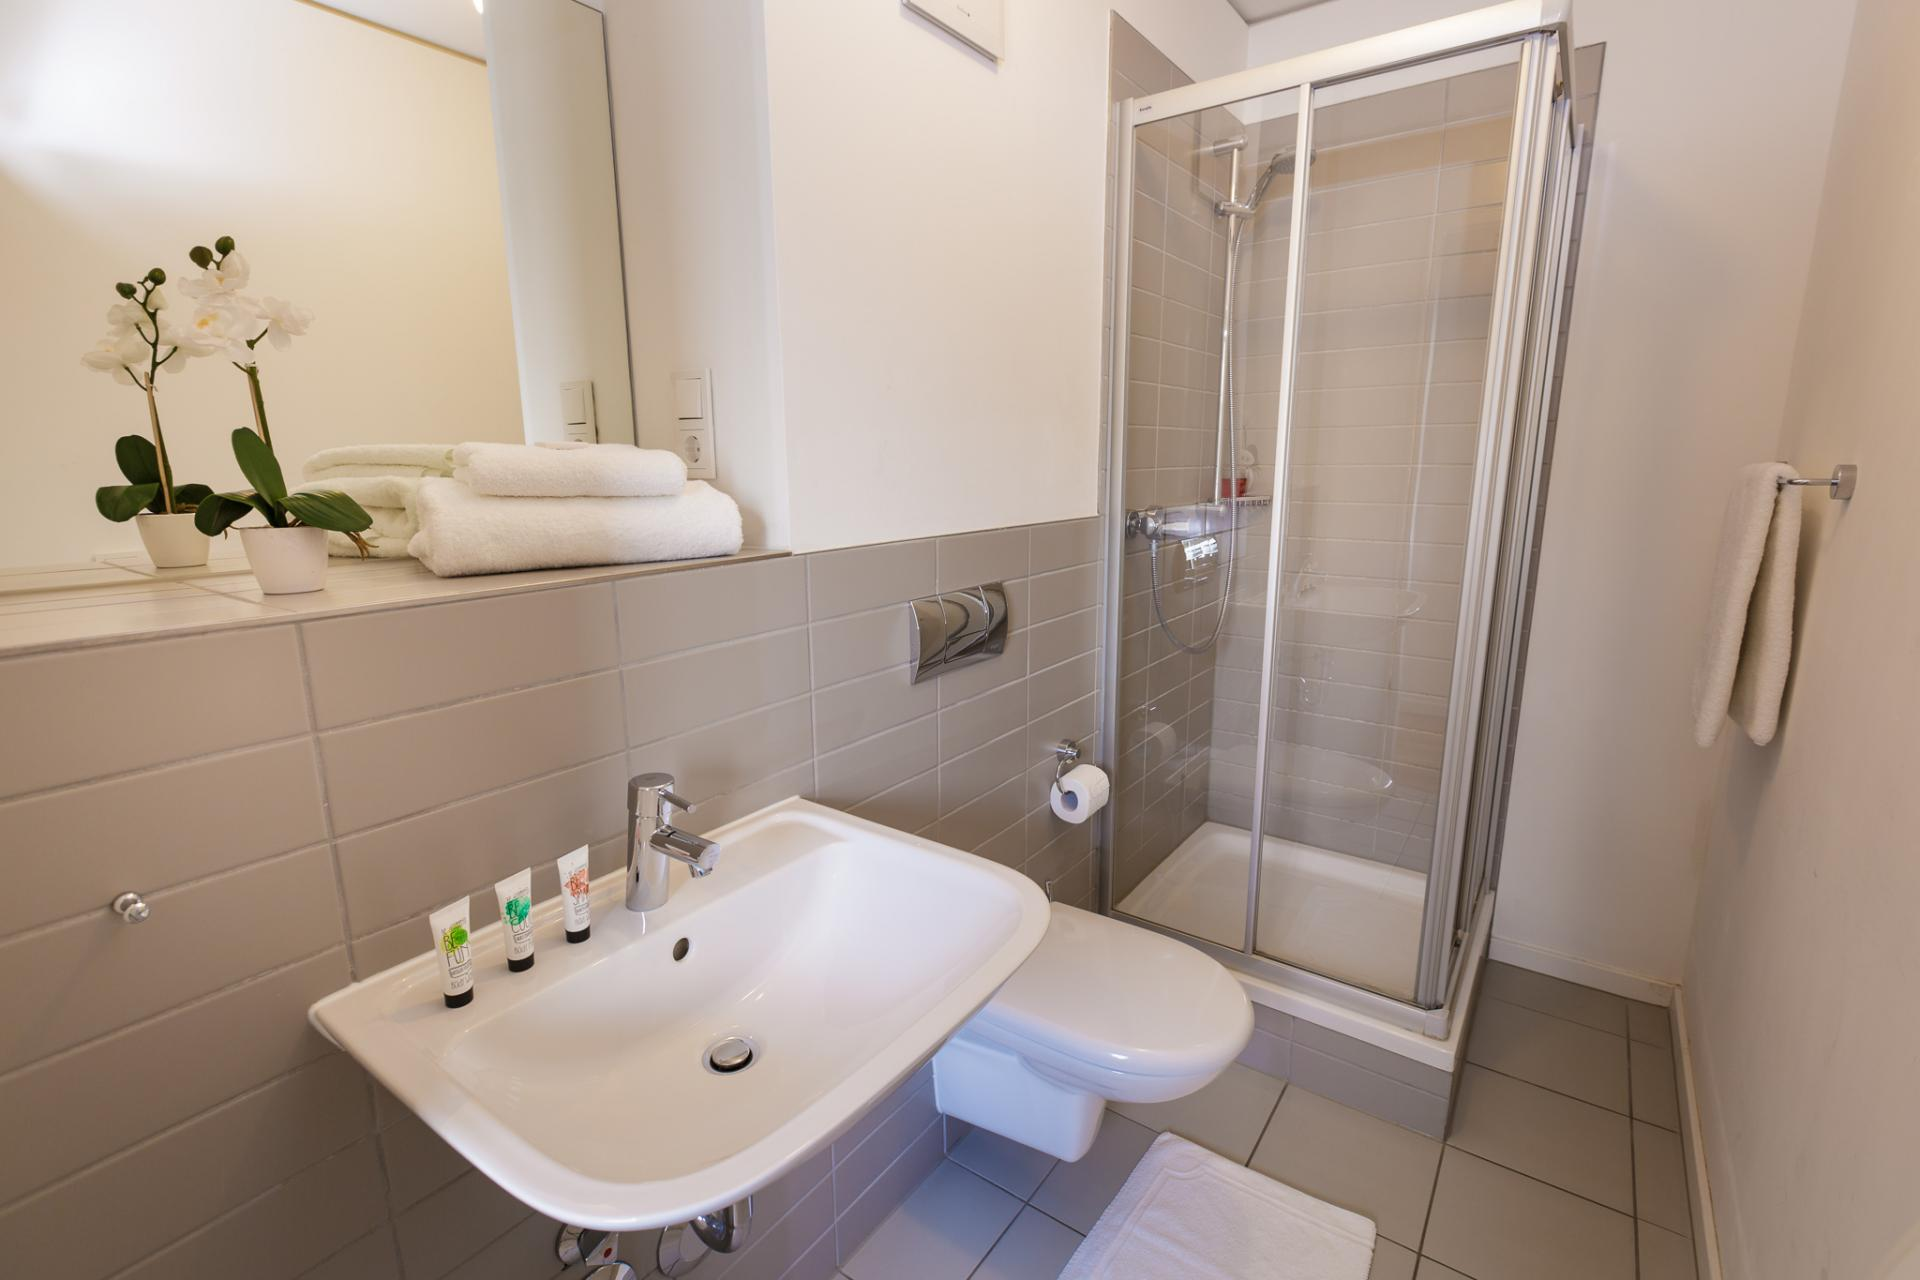 Shower at Brera Am Plaerrer 2 Apartments - Citybase Apartments